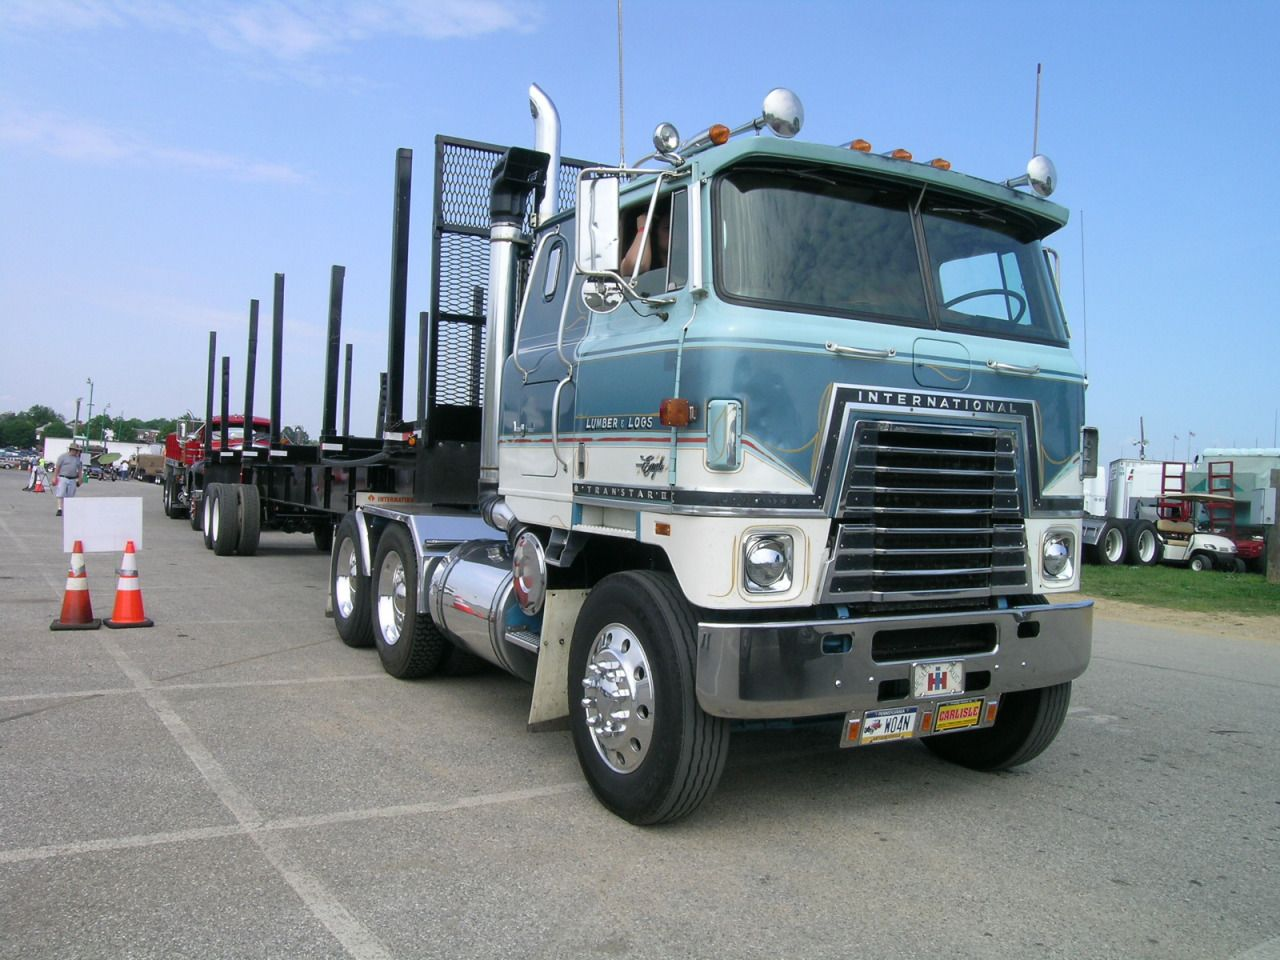 Find this pin and more on international trucks by sarge3445